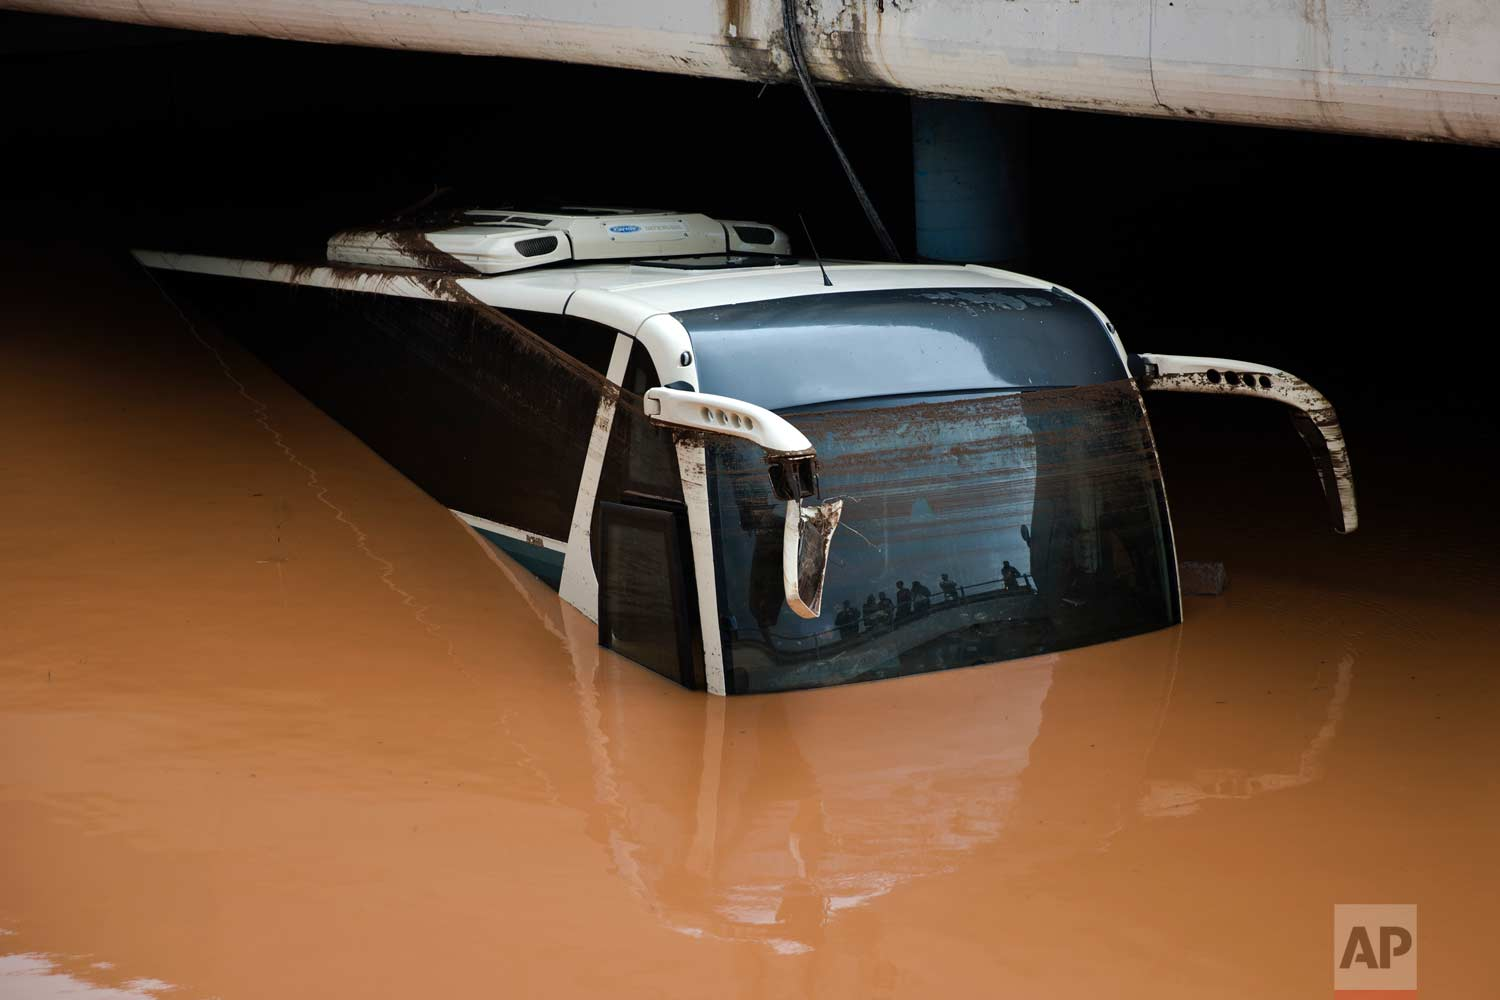 In this Wednesday, Nov. 15, 2017 photo people are reflected on the front window of a flooded bus as water covers an interchange of a highway in Elefsina, west of Athens. Flash floods in the Greek capital's western outskirts Wednesday turned roads into raging torrents of mud and debris, killing at least twenty people, inundating homes and businesses and knocking out a section of a highway. (AP Photo/Petros Giannakouris)